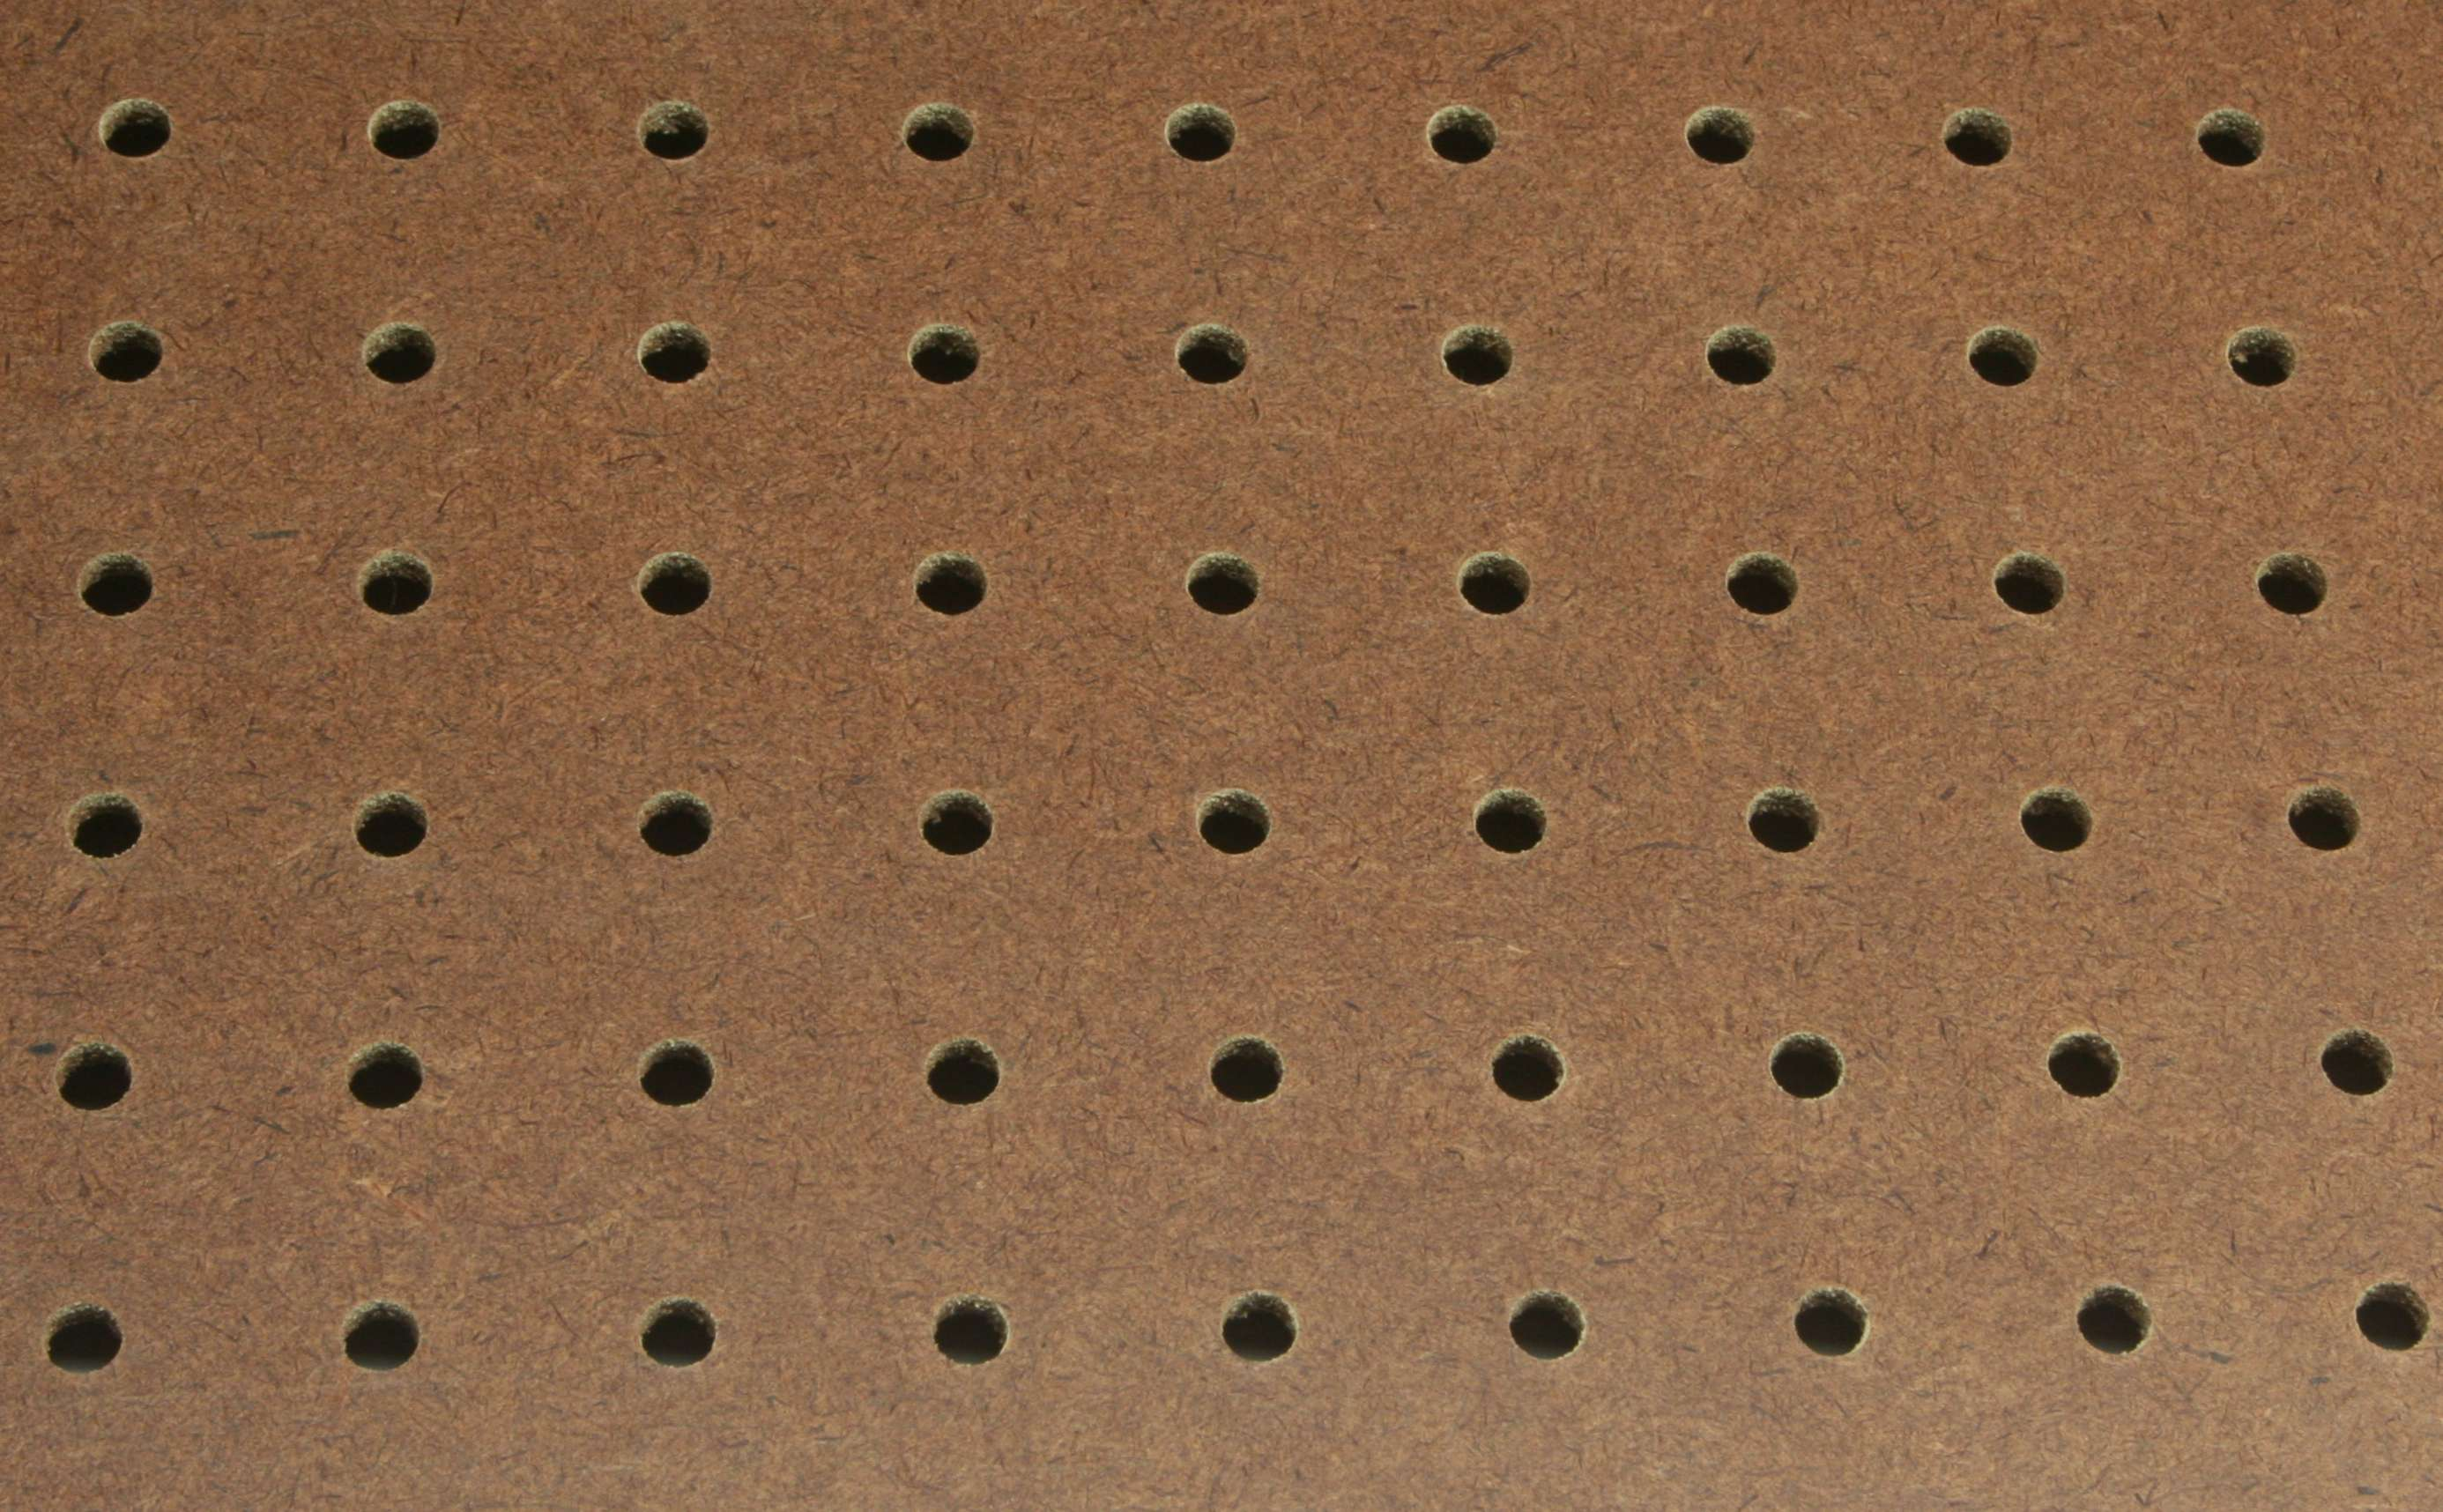 Perforated Hardboard Wikipedia